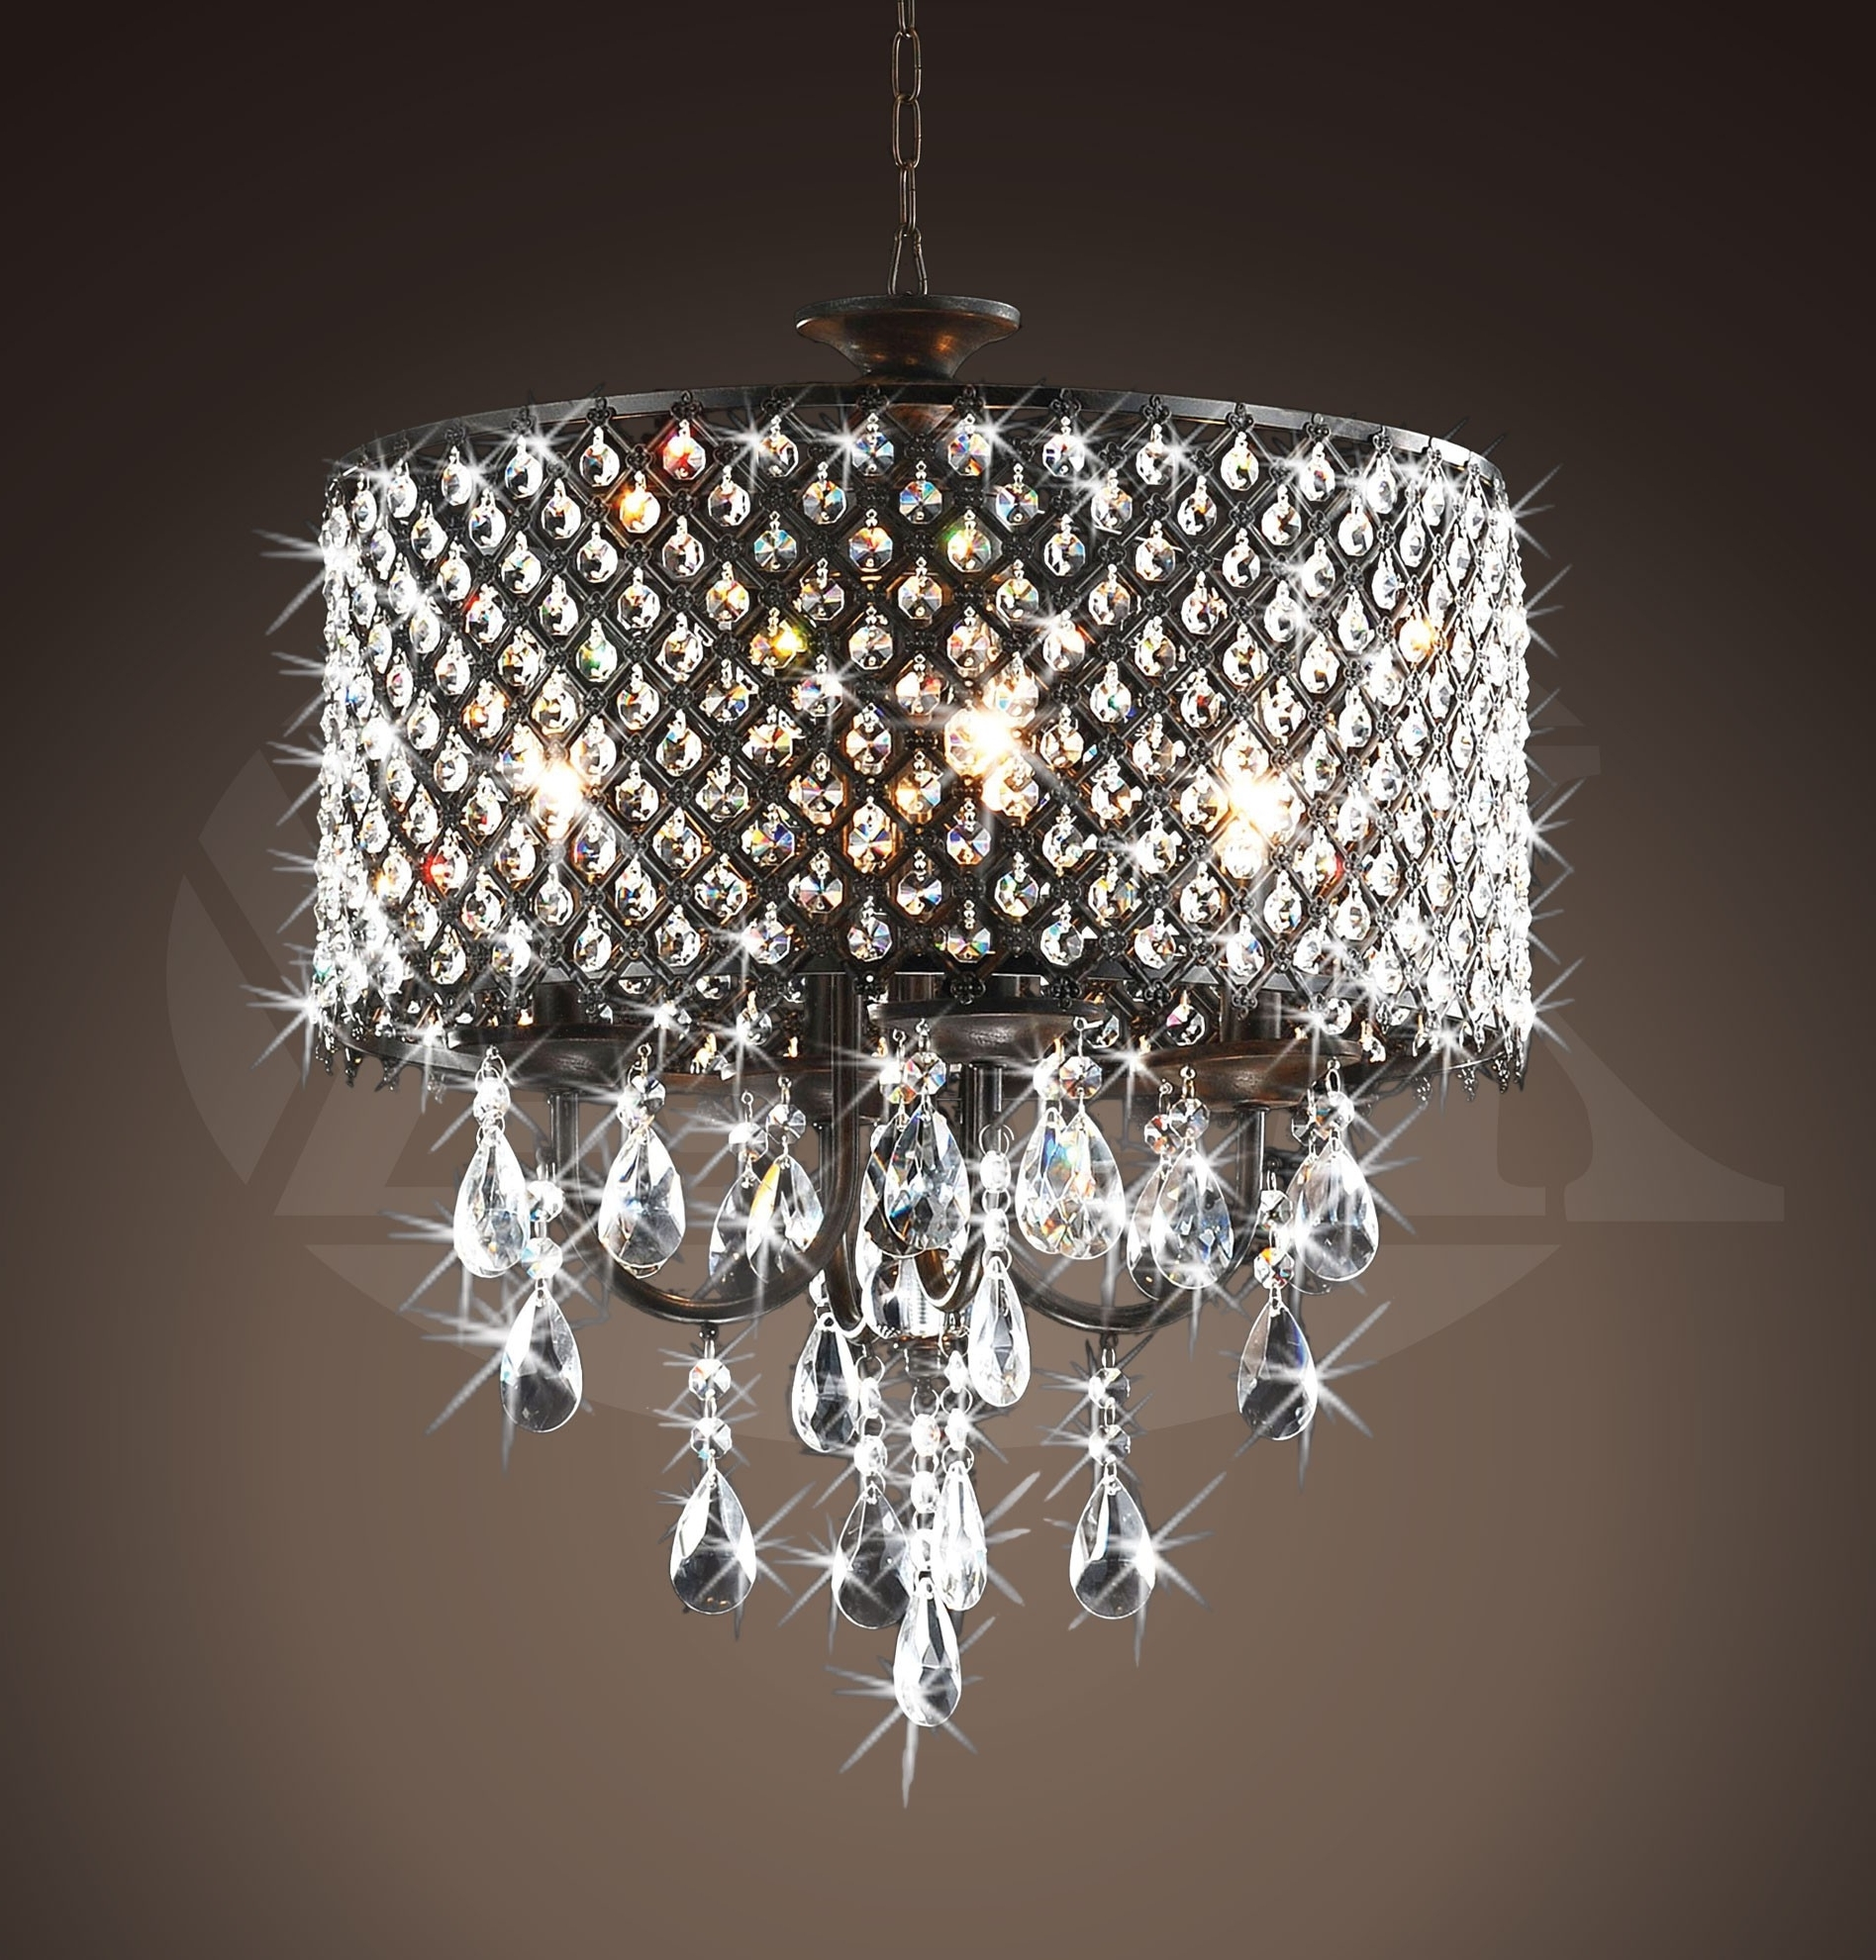 Unusual Chandeliers Pertaining To Most Up To Date Light : Cristal Chandelier Rachelle Light Round Antique Bronze Brass (View 14 of 20)